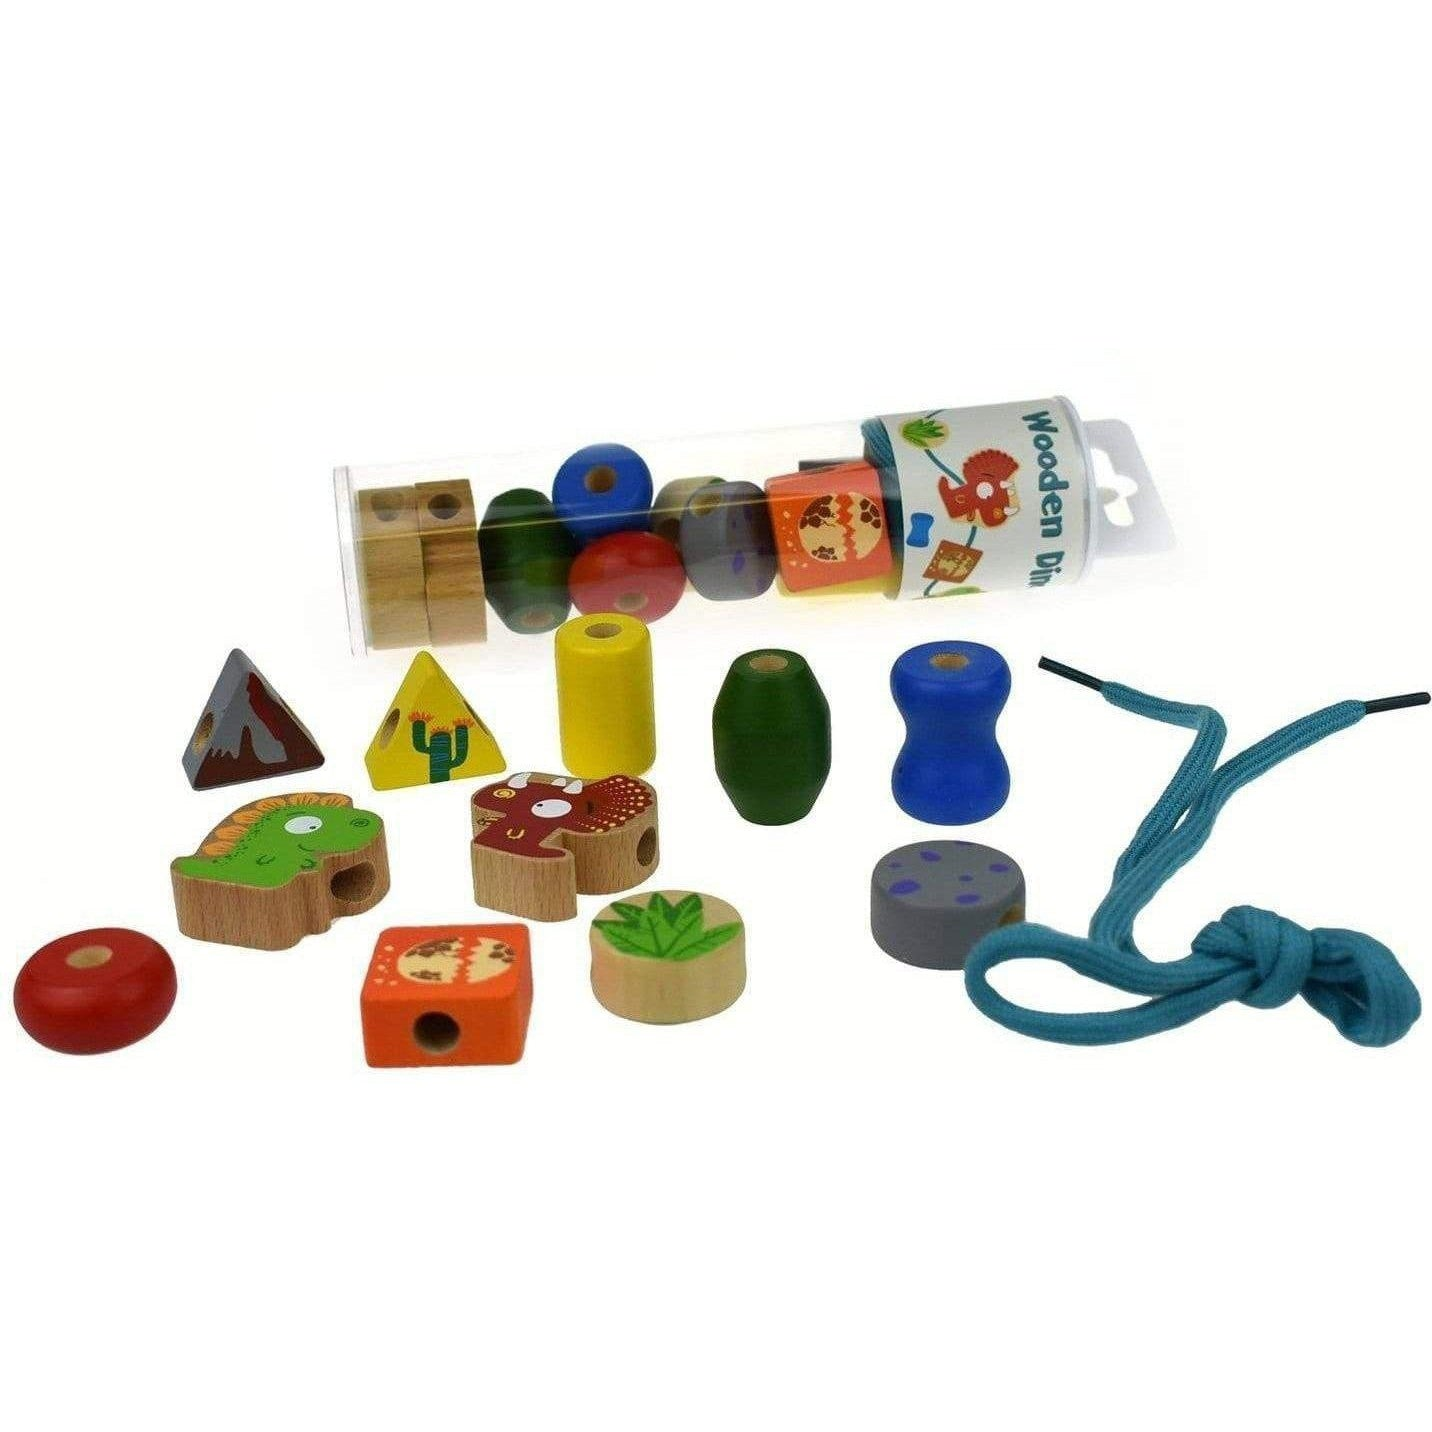 Dinosaur Lacing Bead Set Wooden Toy for Kids